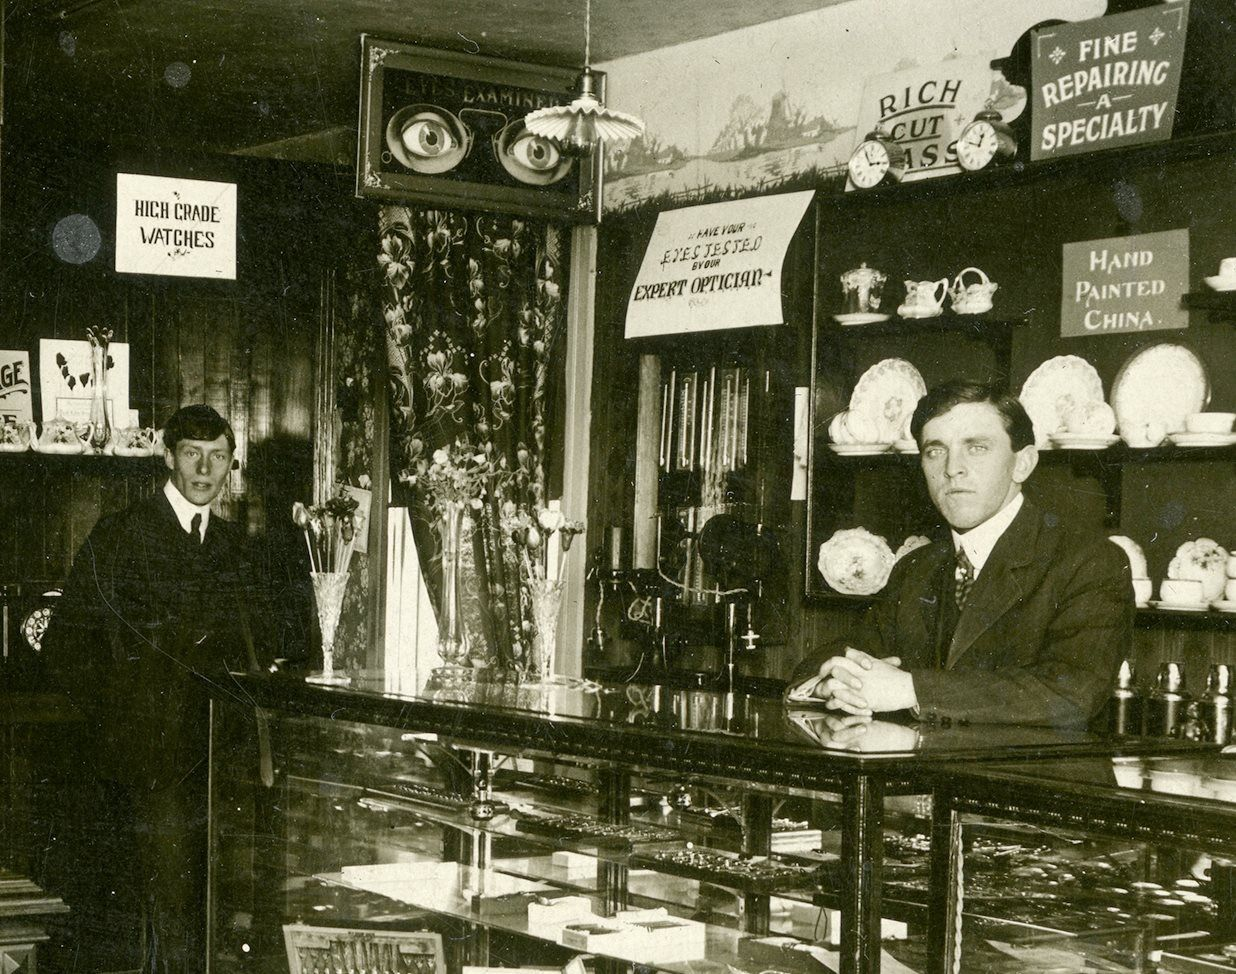 Dr. Harold Snell and A.B. Mitchell in the jewelry store